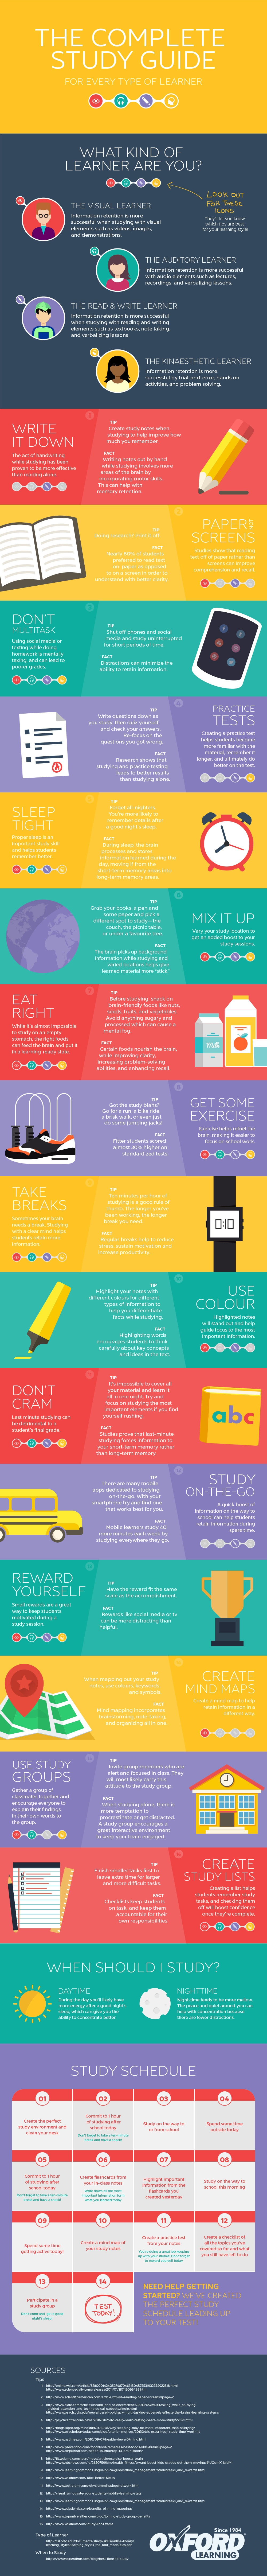 The Complete Study Guide Infographic